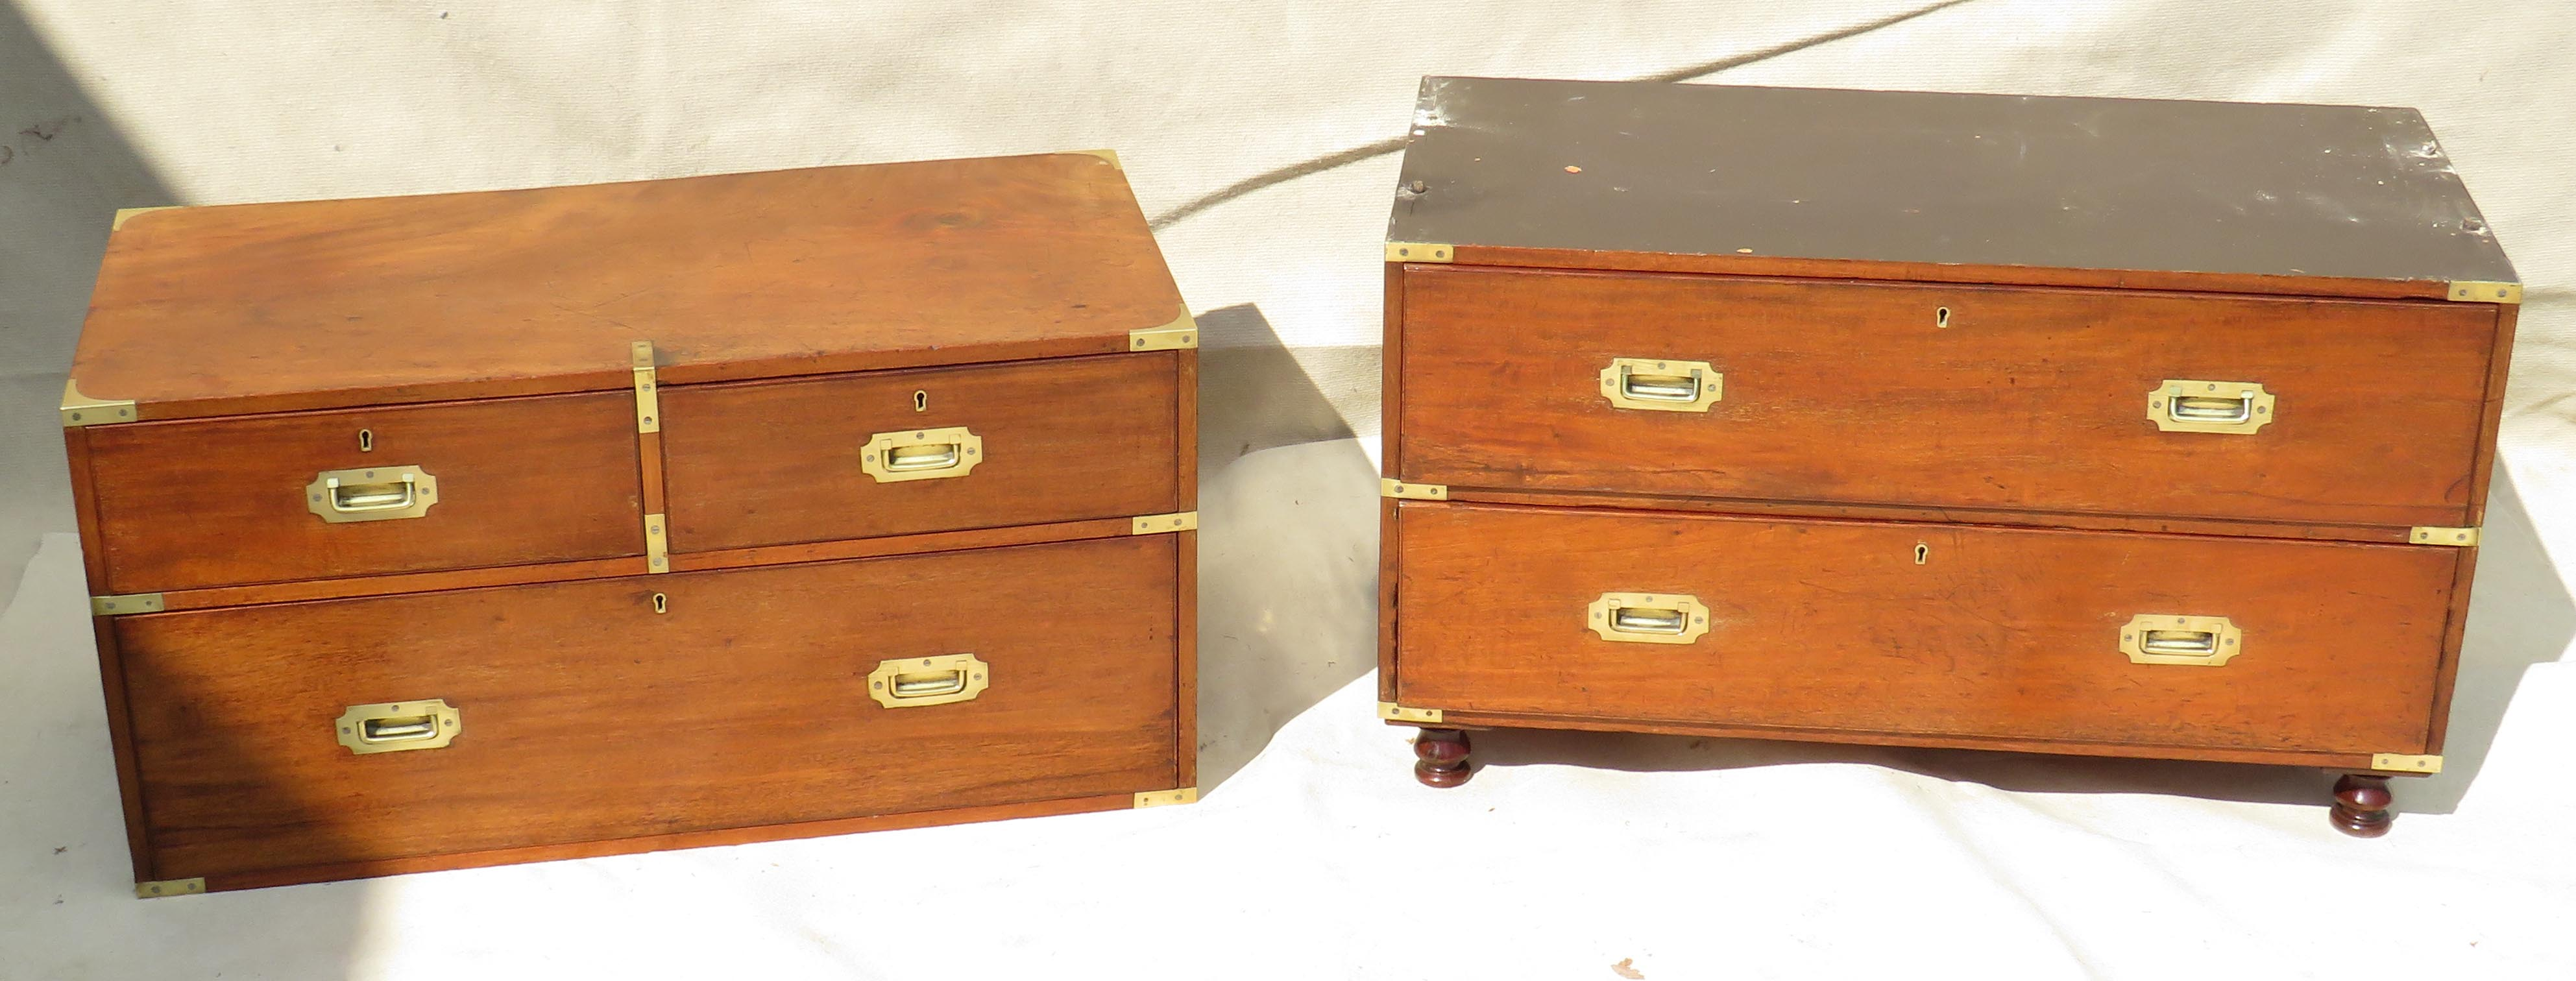 Lot 17 - 19th Century mahogany & camphor wood military campaign chest